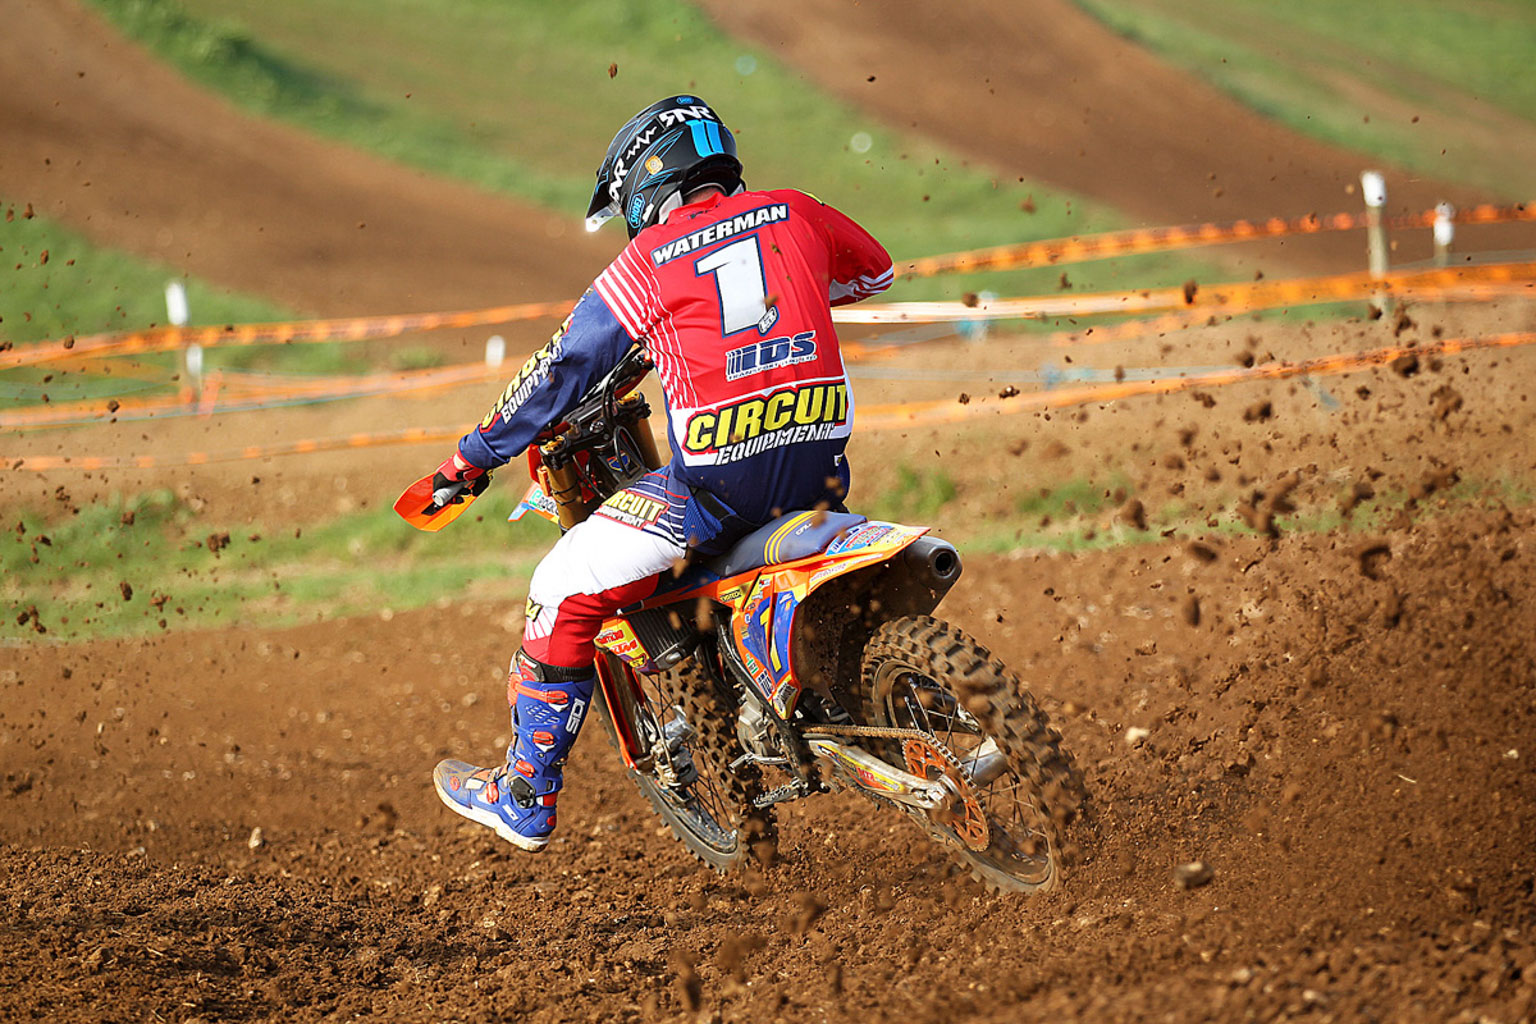 Josh Waterman blasting to 2nd in MX2